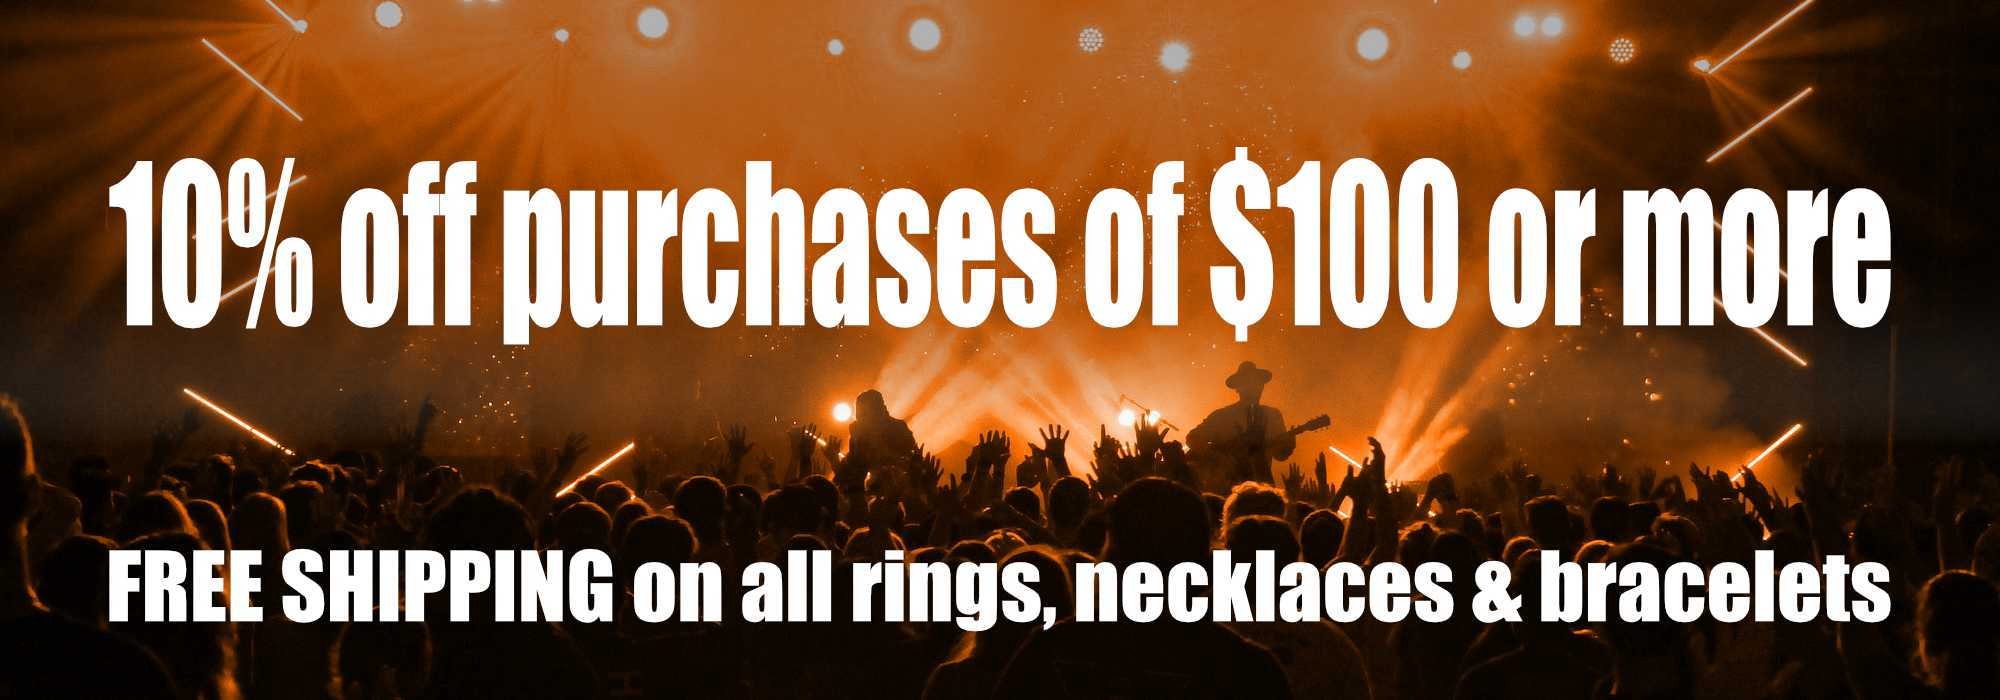 10% Off purchases of $100 or more | Free shipping on all rings, necklaces & bracelets